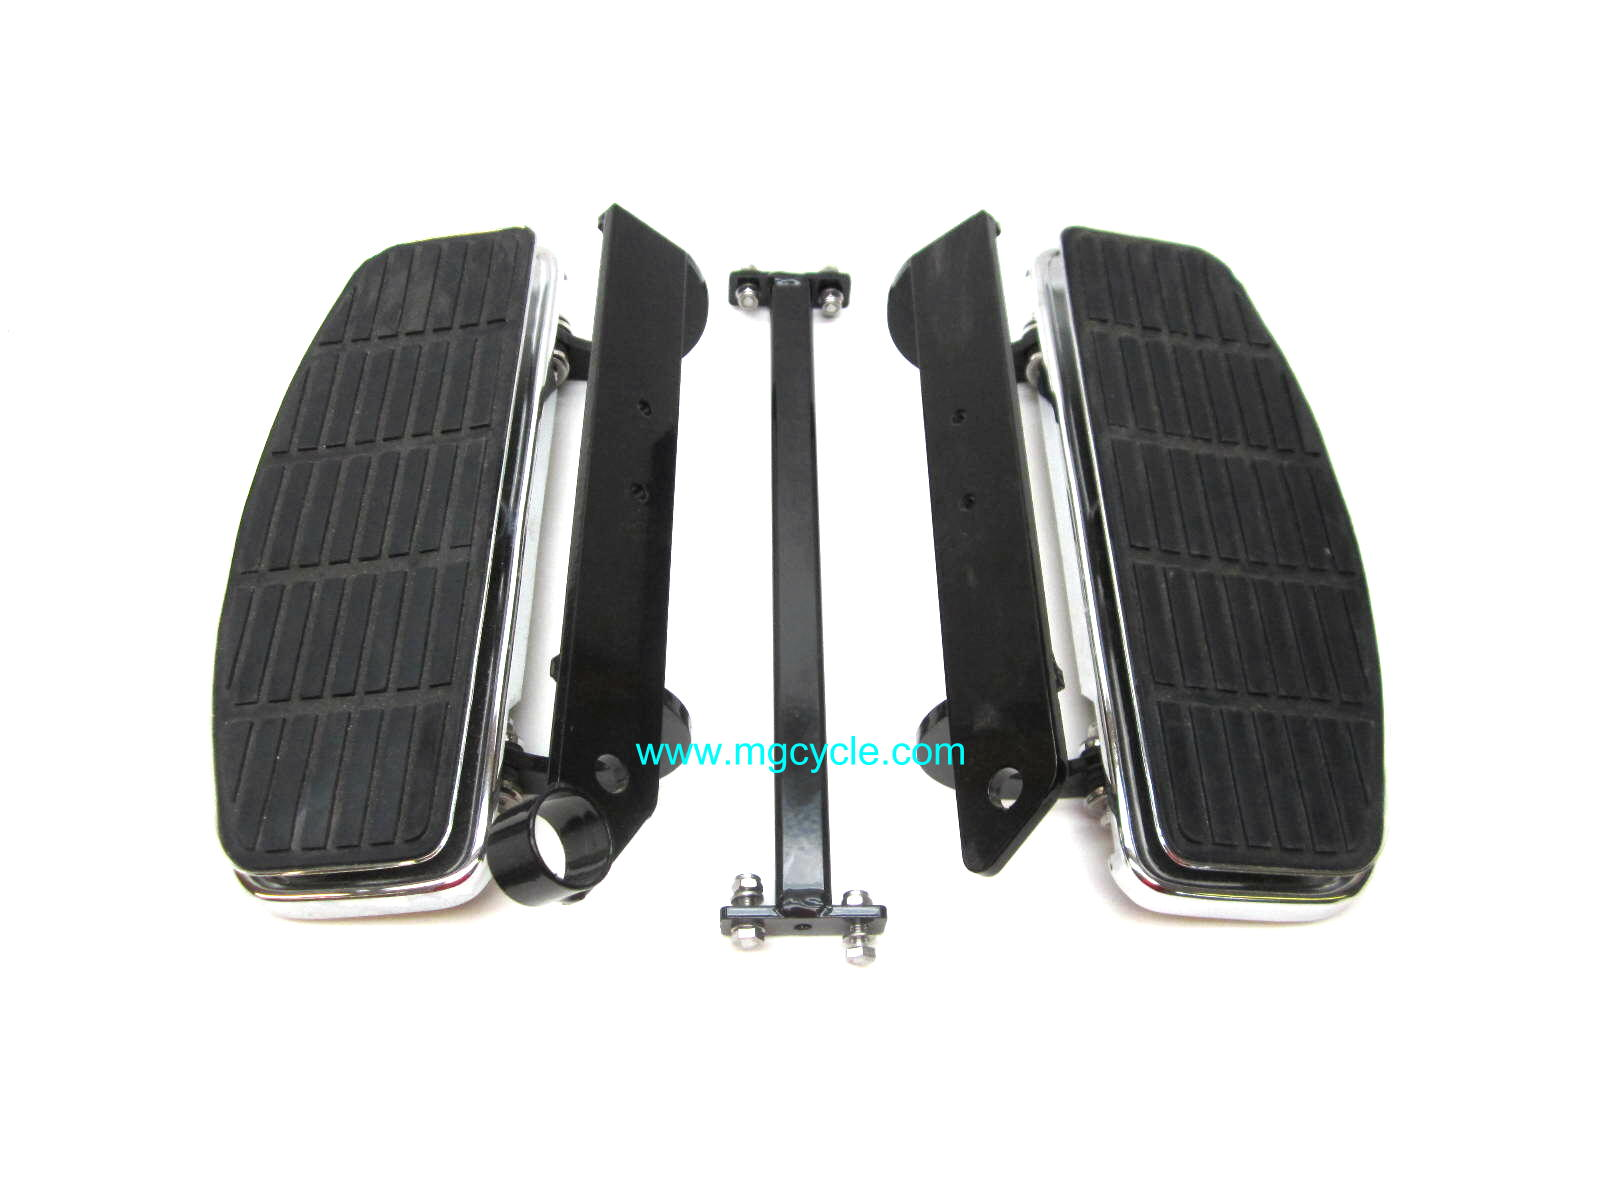 floorboard foot board kit for Eldorado Ambassador